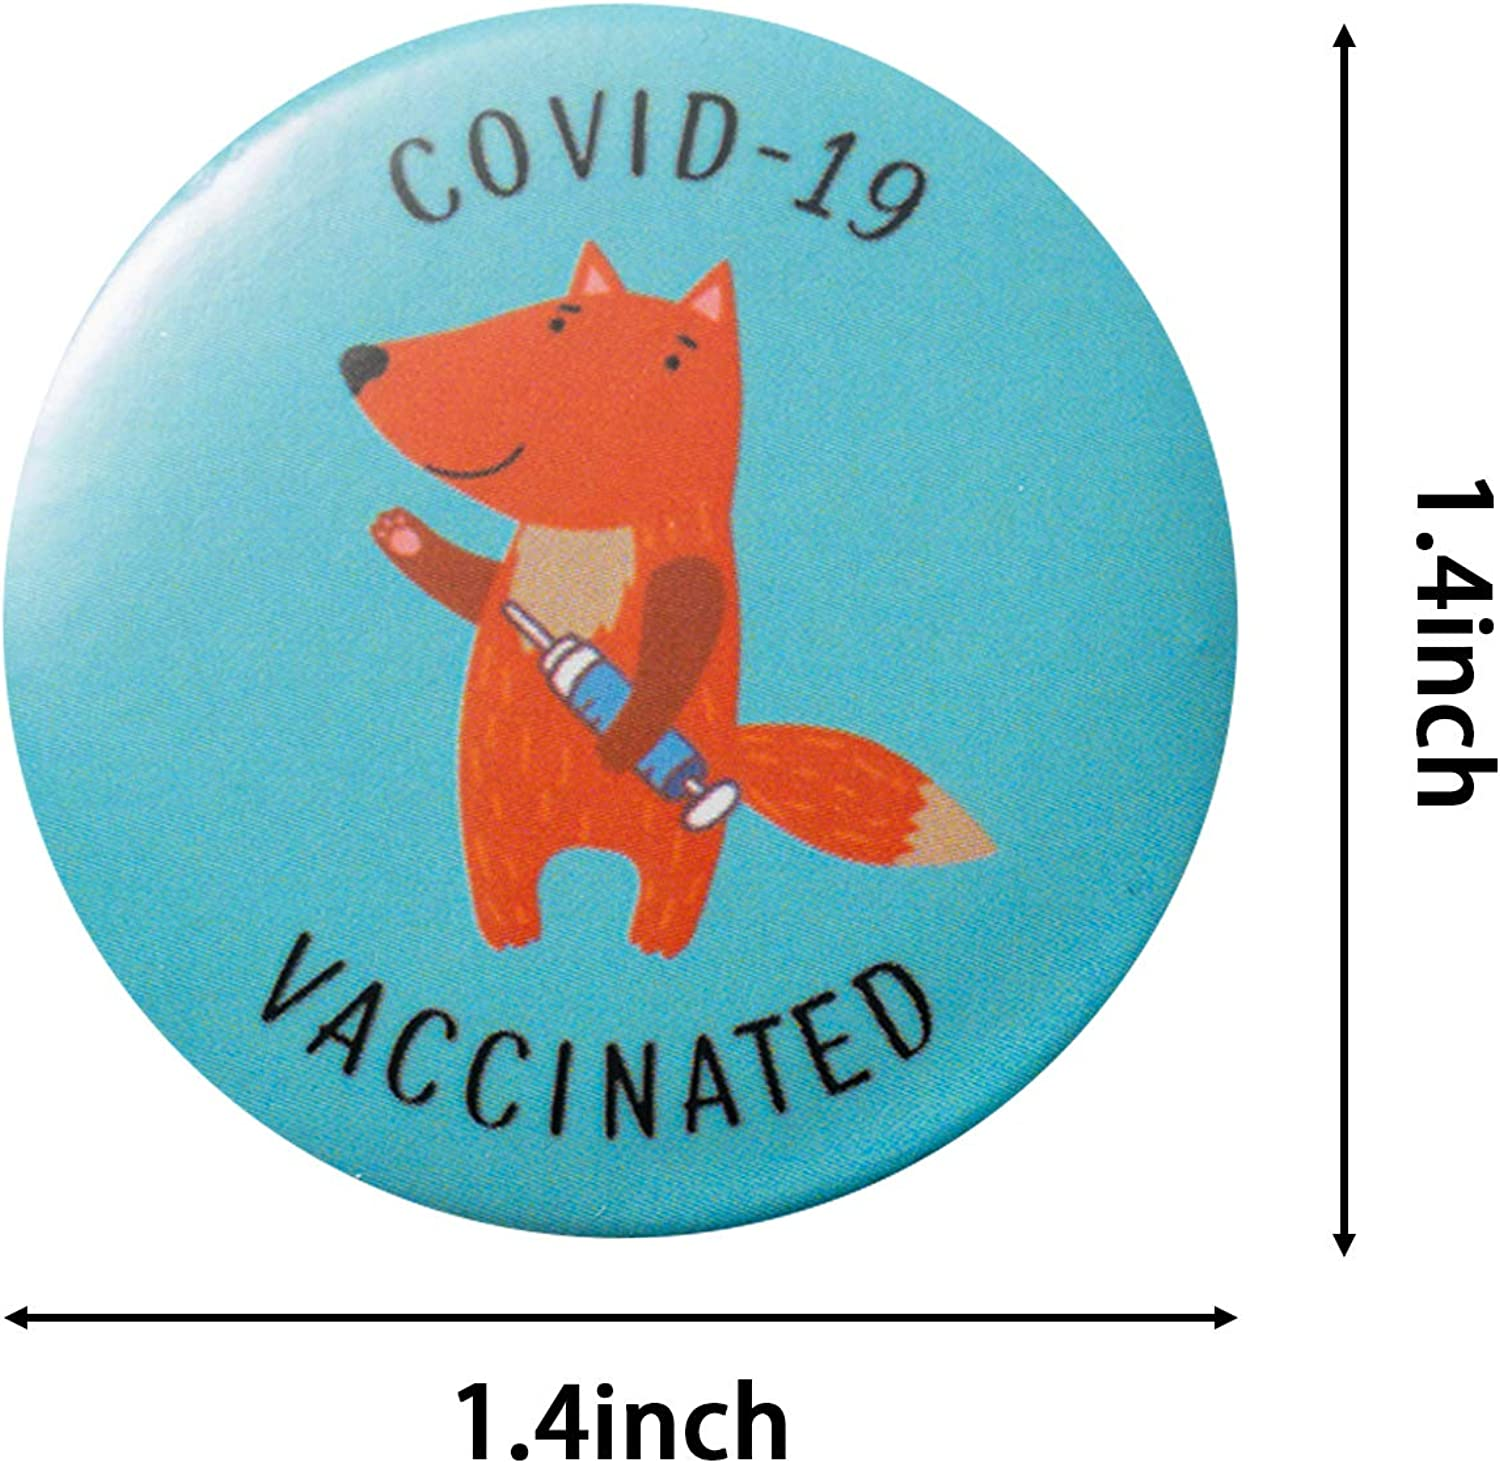 12Pcs Vaccine Button Pins with Cartoon Animals Covid-19 Vaccinated Recipient Notification CDC Encouraged Public Health and Clinical Pinback Button Badges Vaccinated for Virus Pin 6 Styles